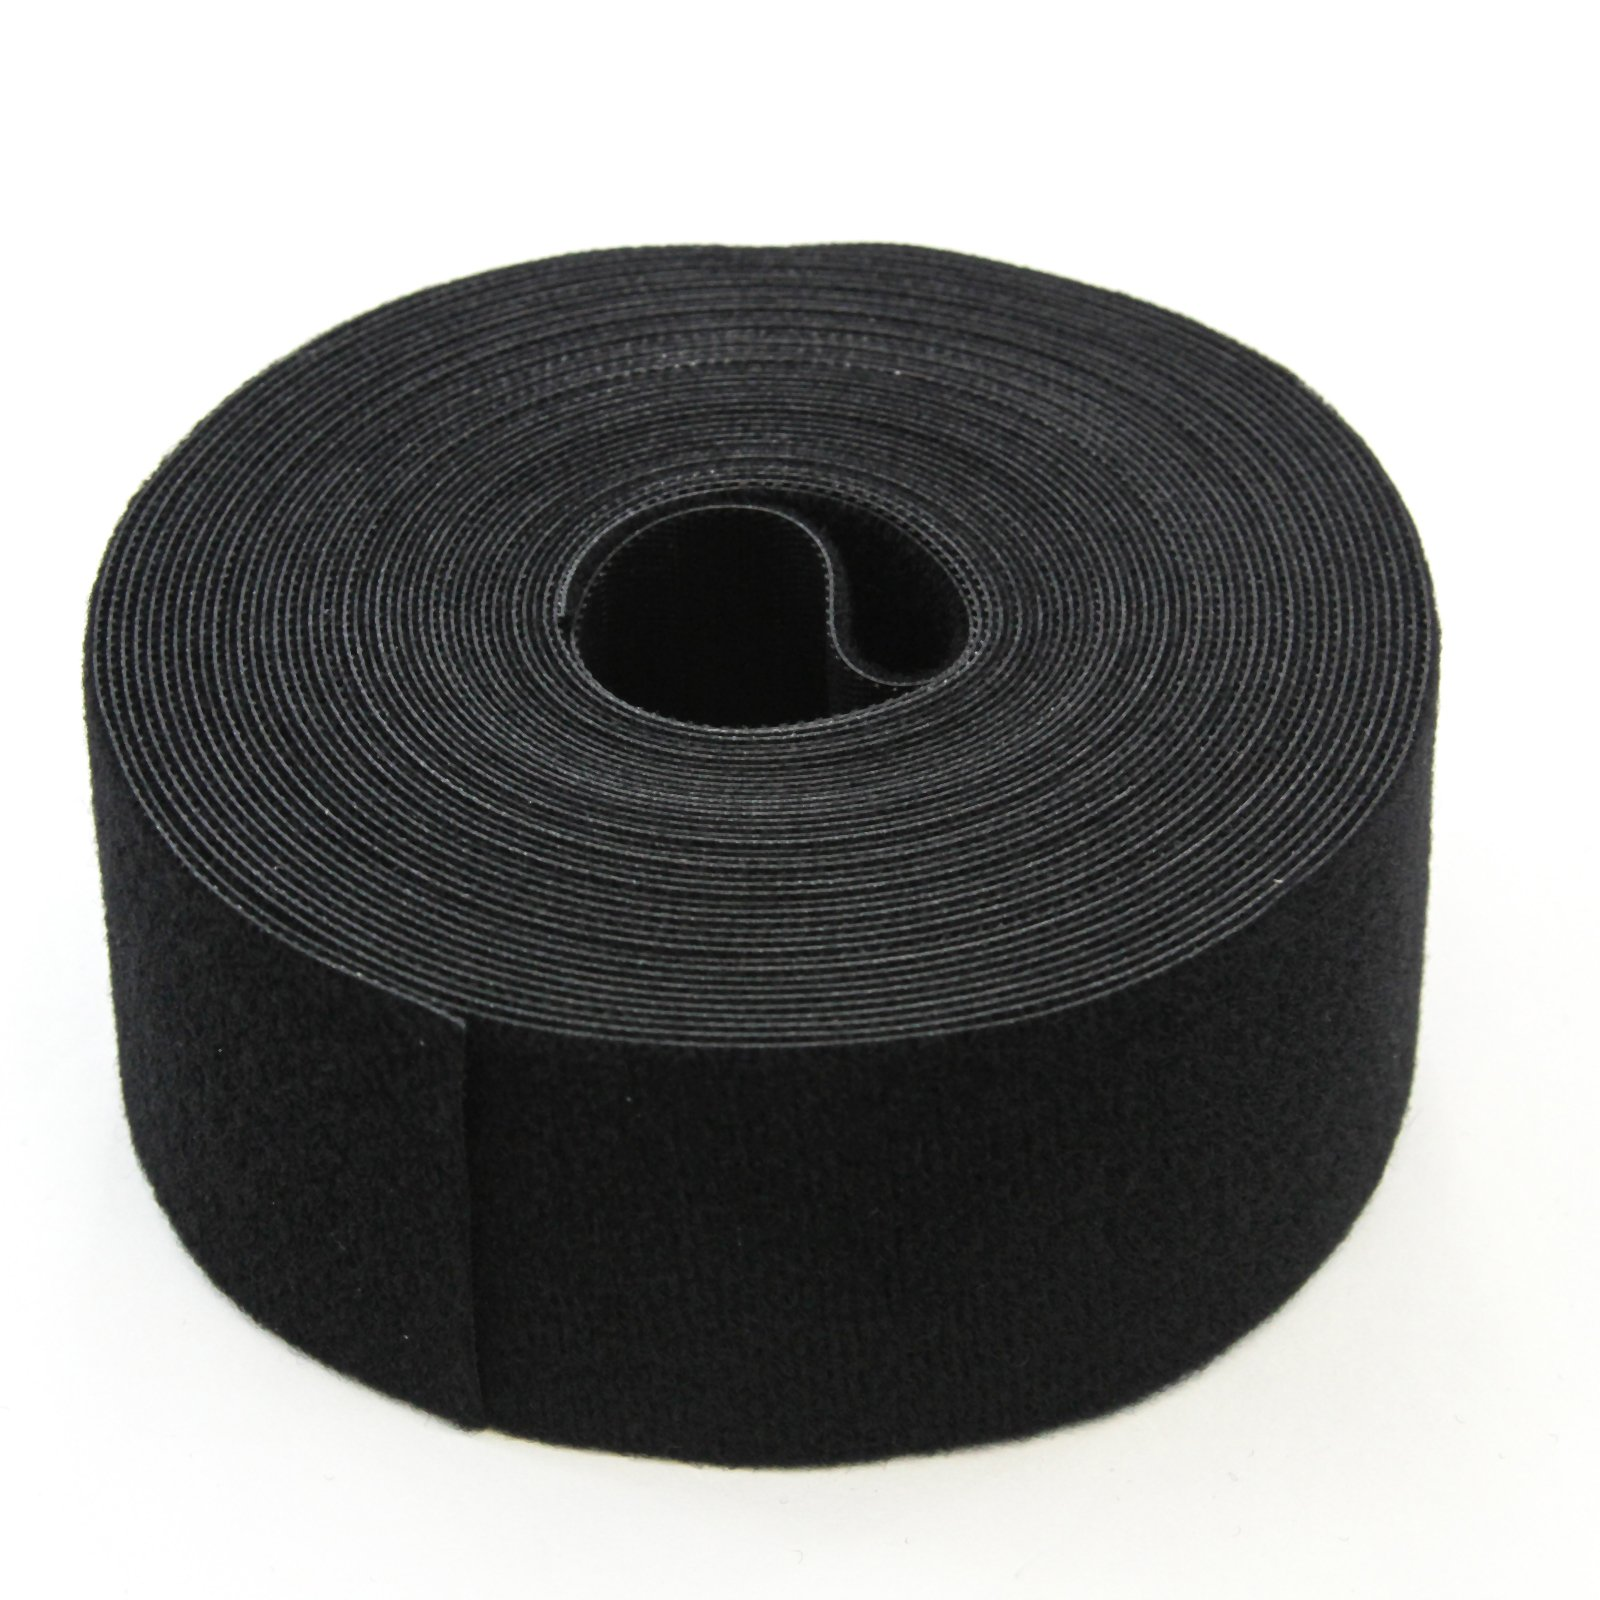 30FT REUSABLE 2 Inch Roll Hook & Loop Cable Fastening Tape Cord Wraps Straps